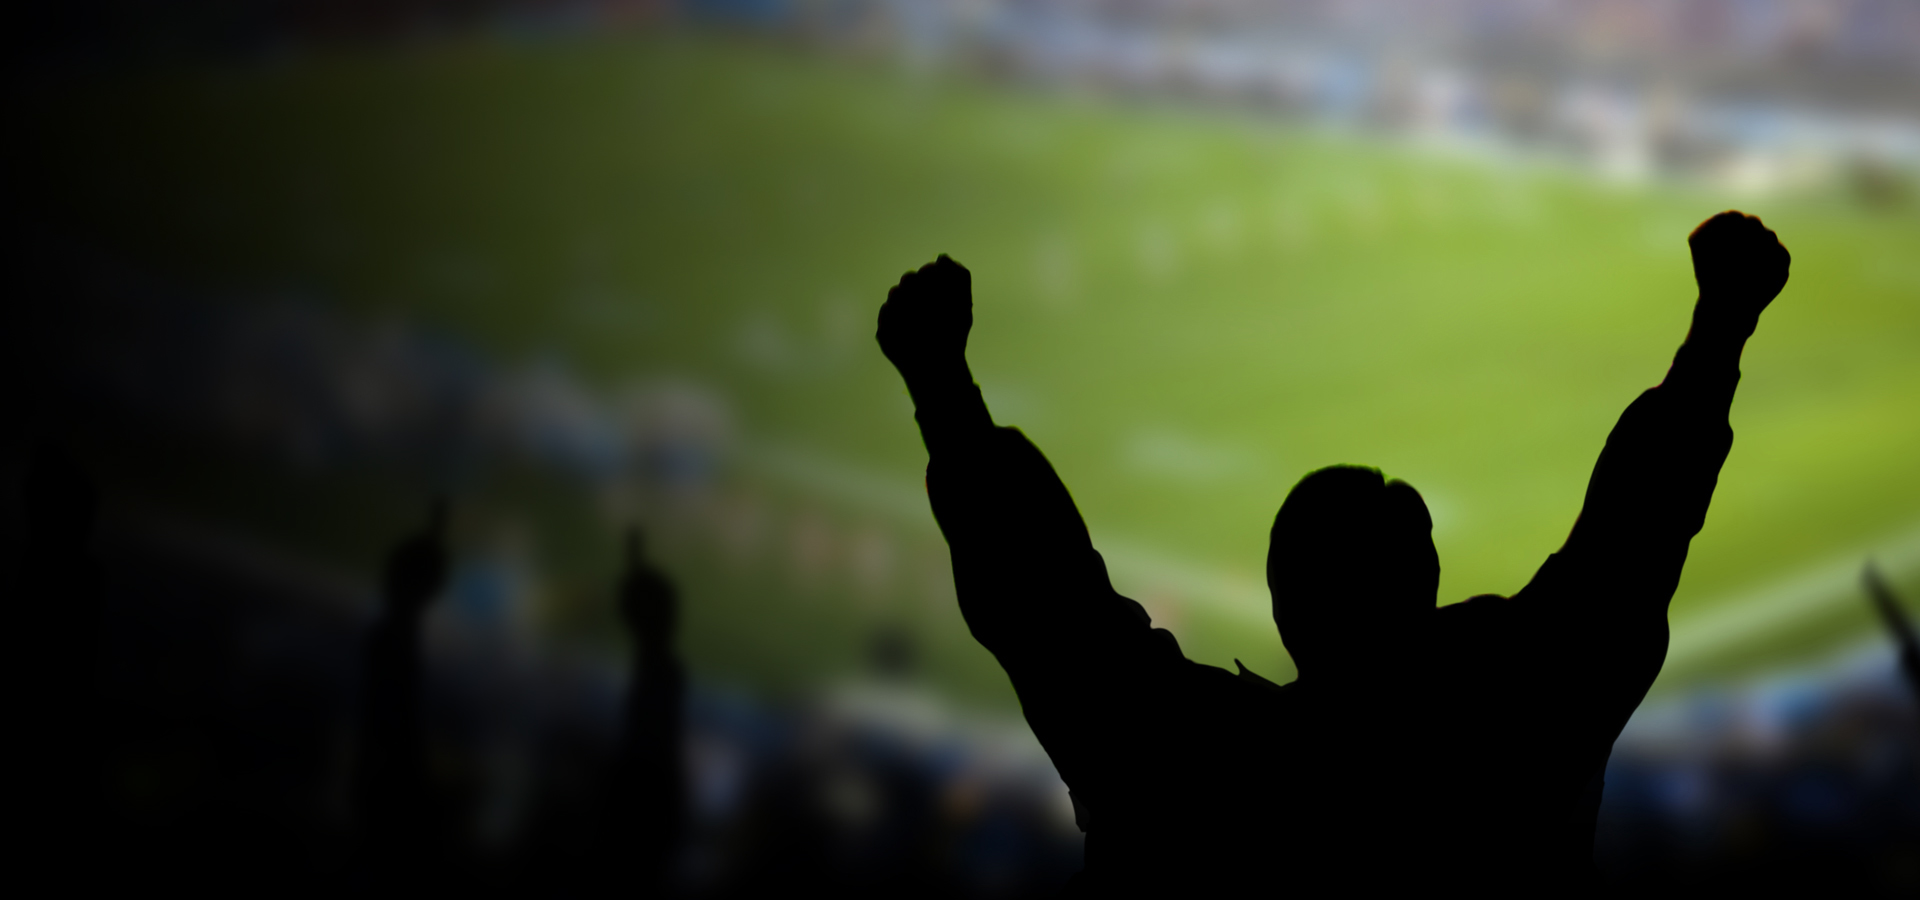 man with arms outstretched in noisy football stadium -1920x900